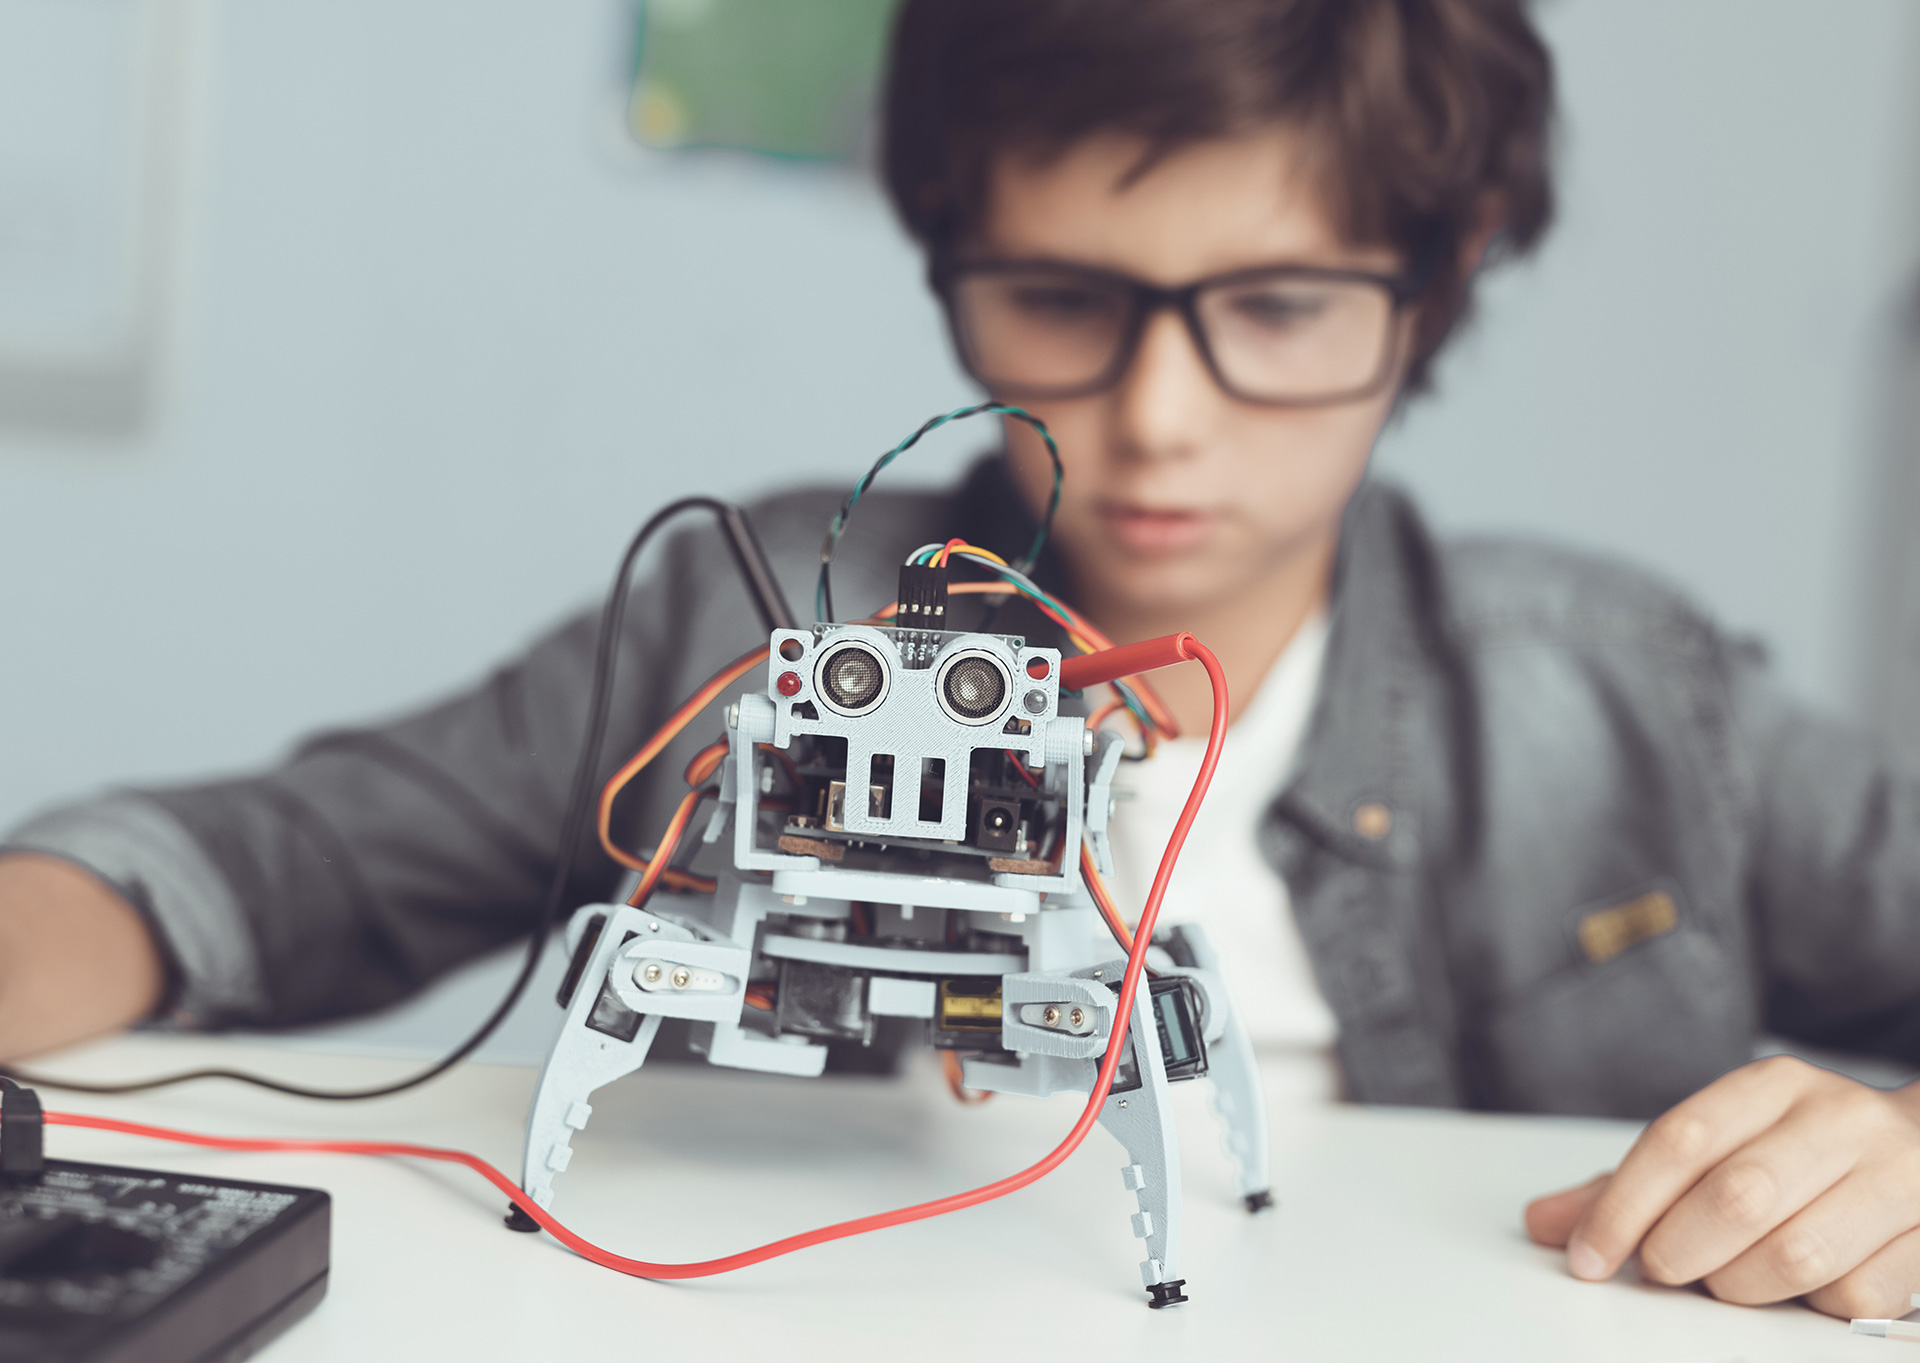 Children's perceptions of the moral worth of live agents, robots, and inanimate objects, Journal of Experimental Child Psychology, November 2019